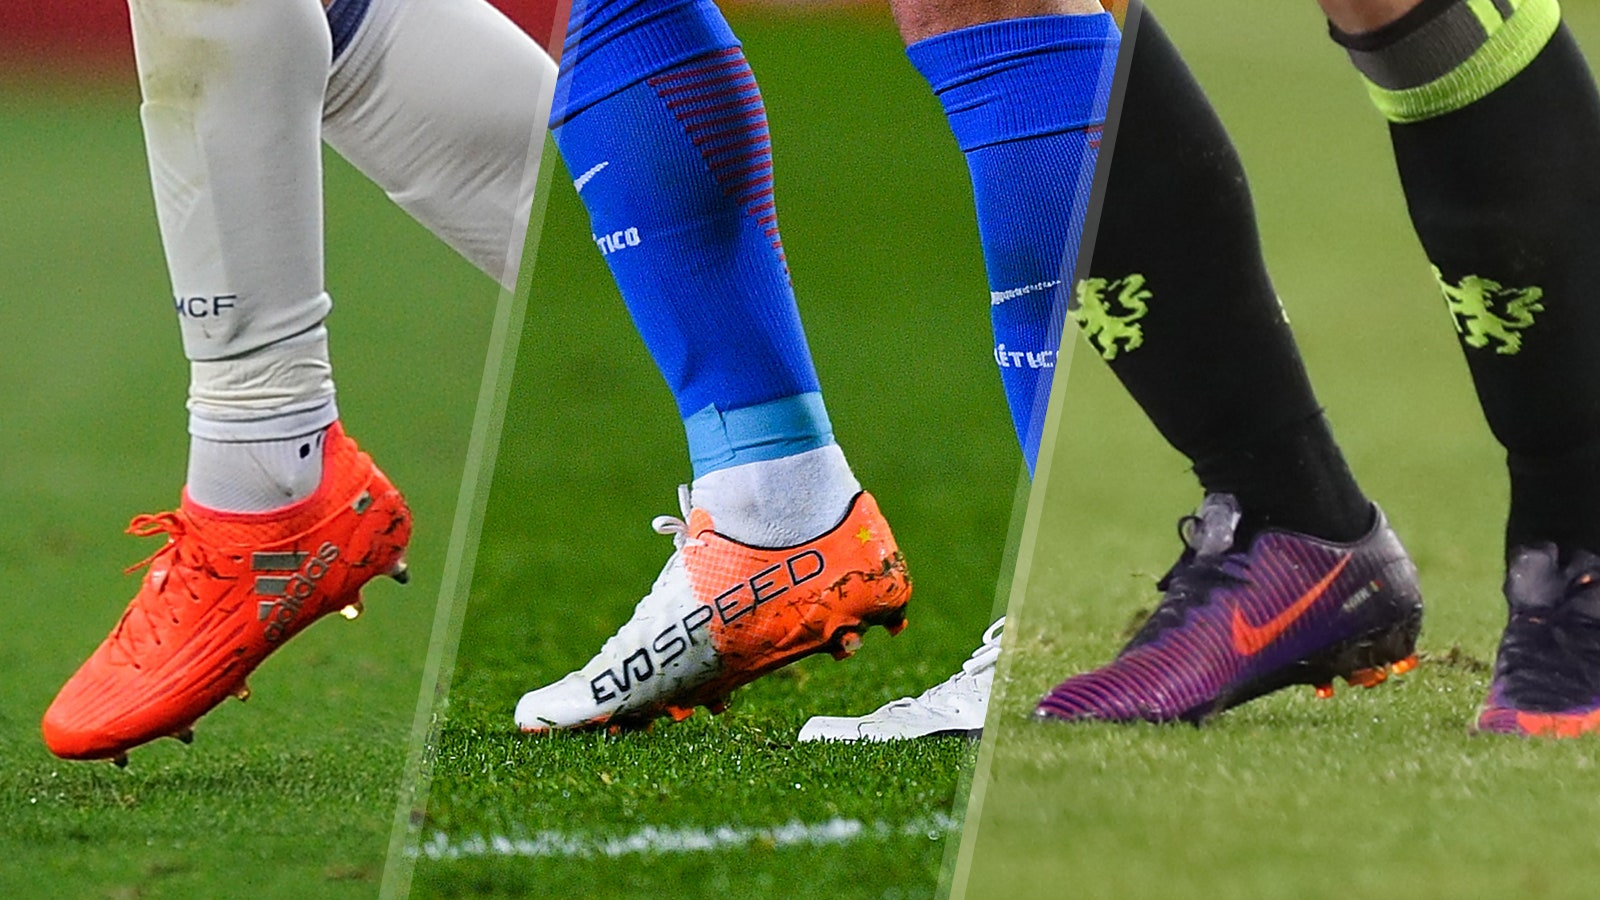 buy online eeff8 9926a The 10 most popular boots worn by pro soccer players   FOX Sports